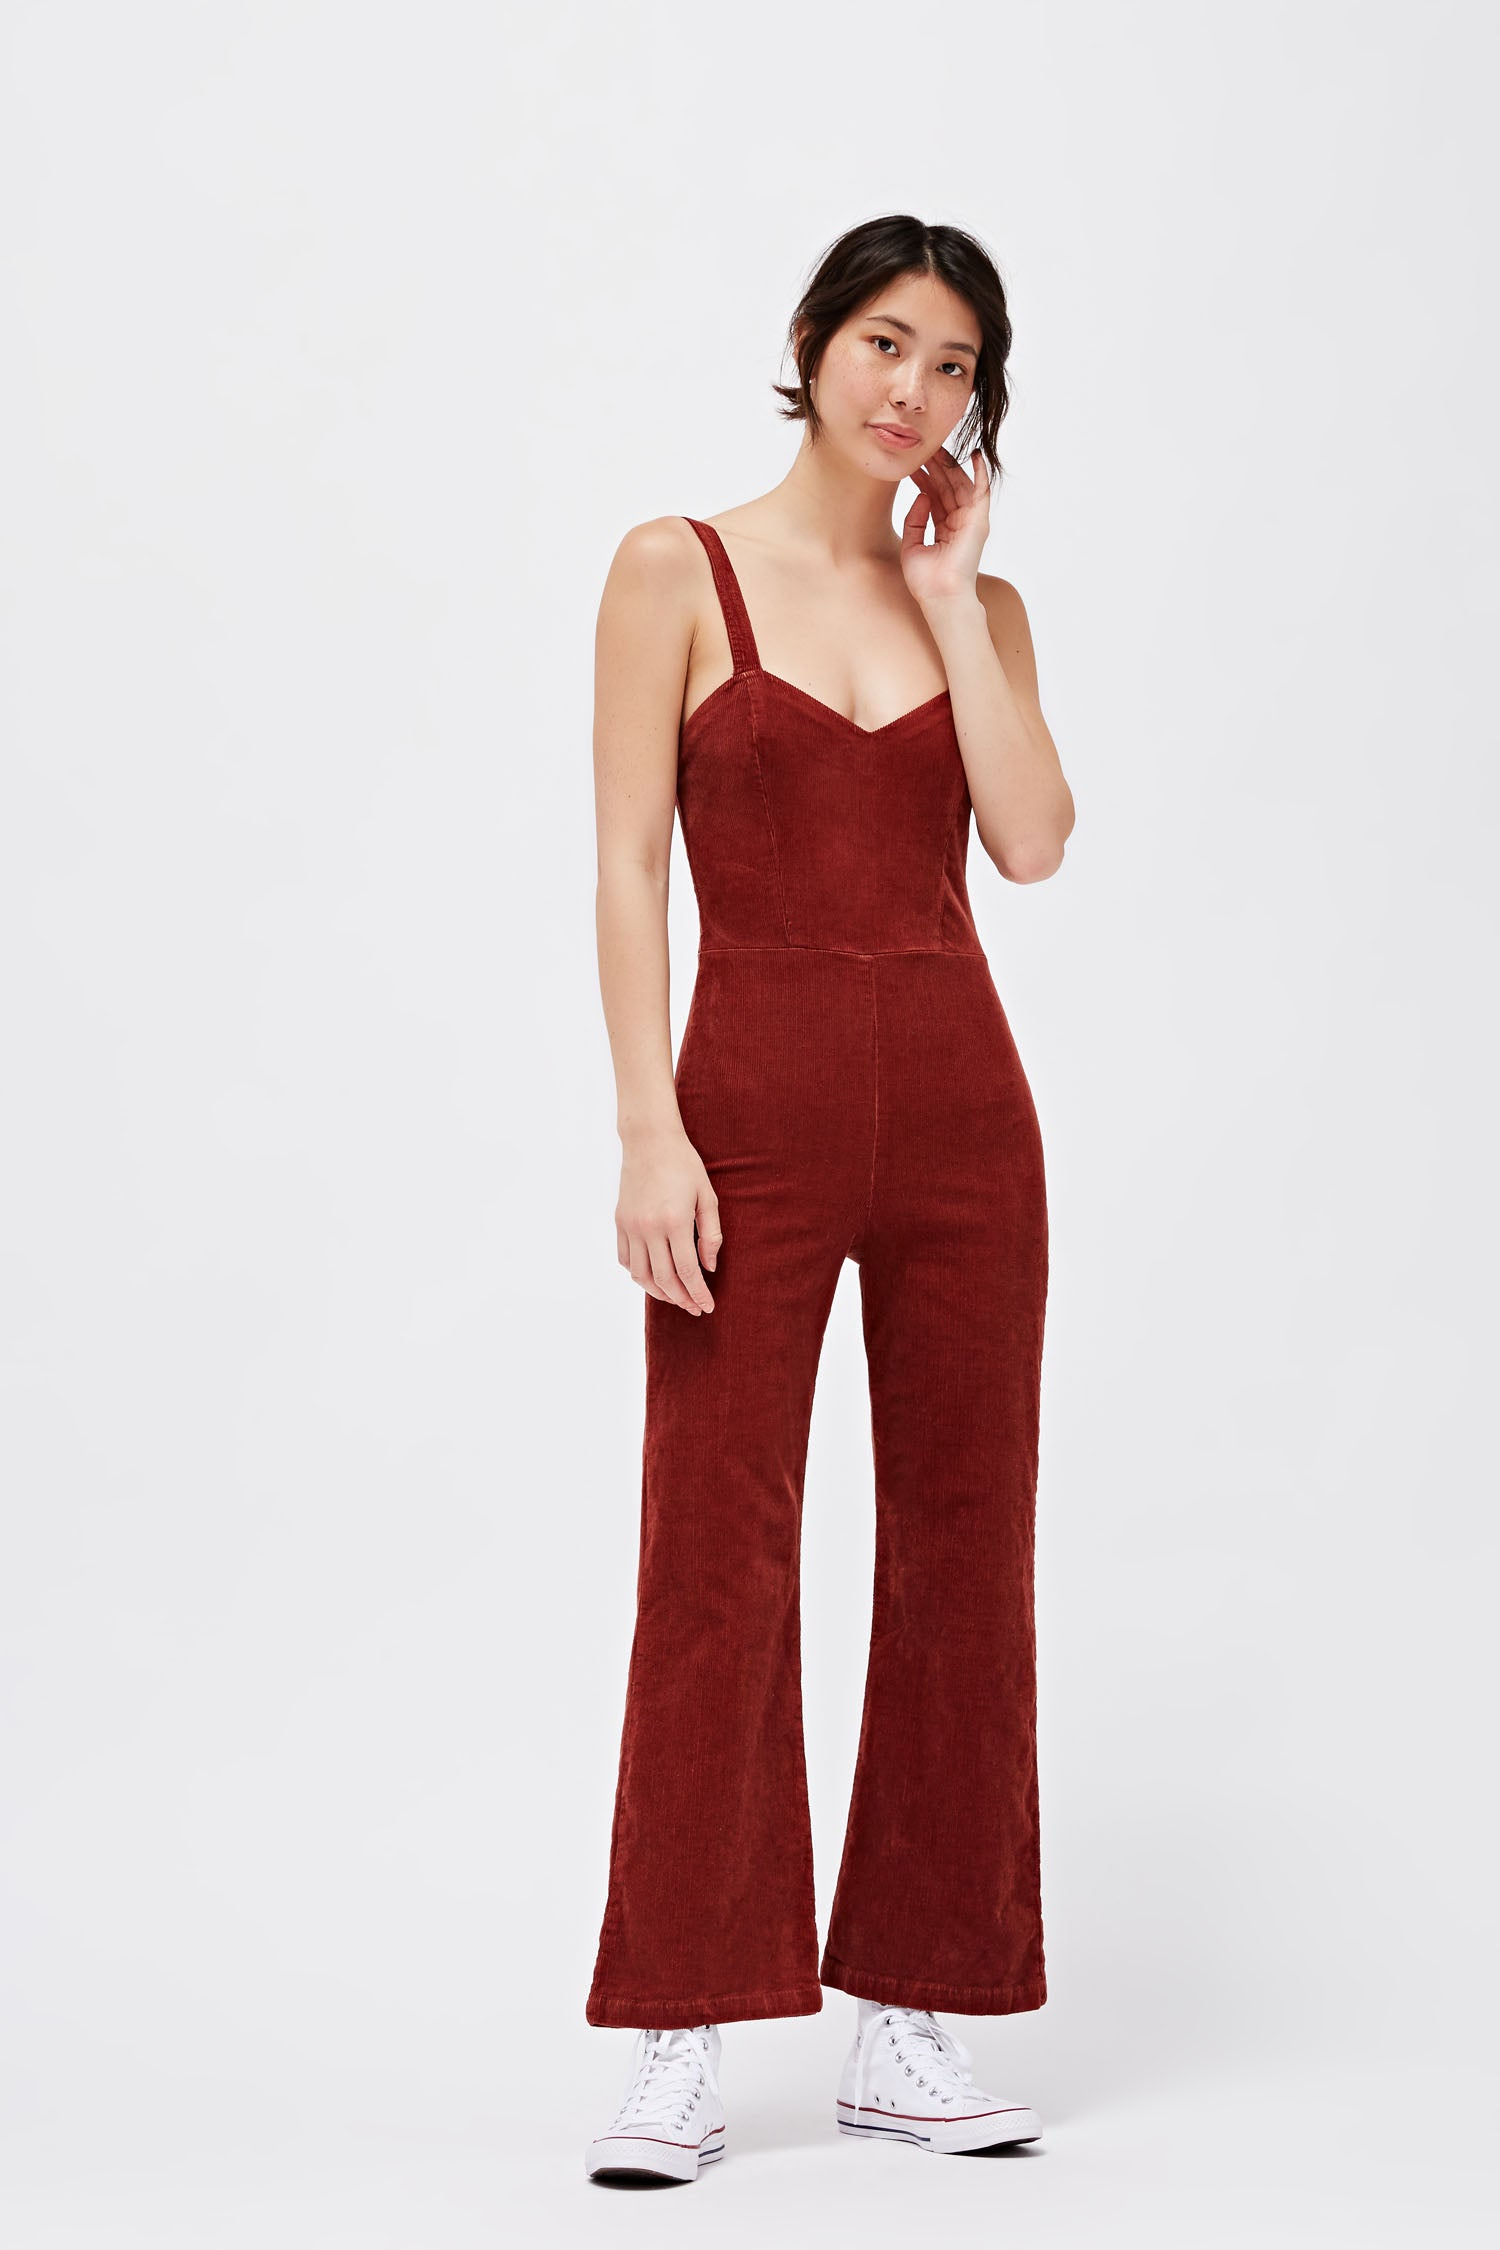 8310ddf253 Jumpsuits - LACAUSA Clothing